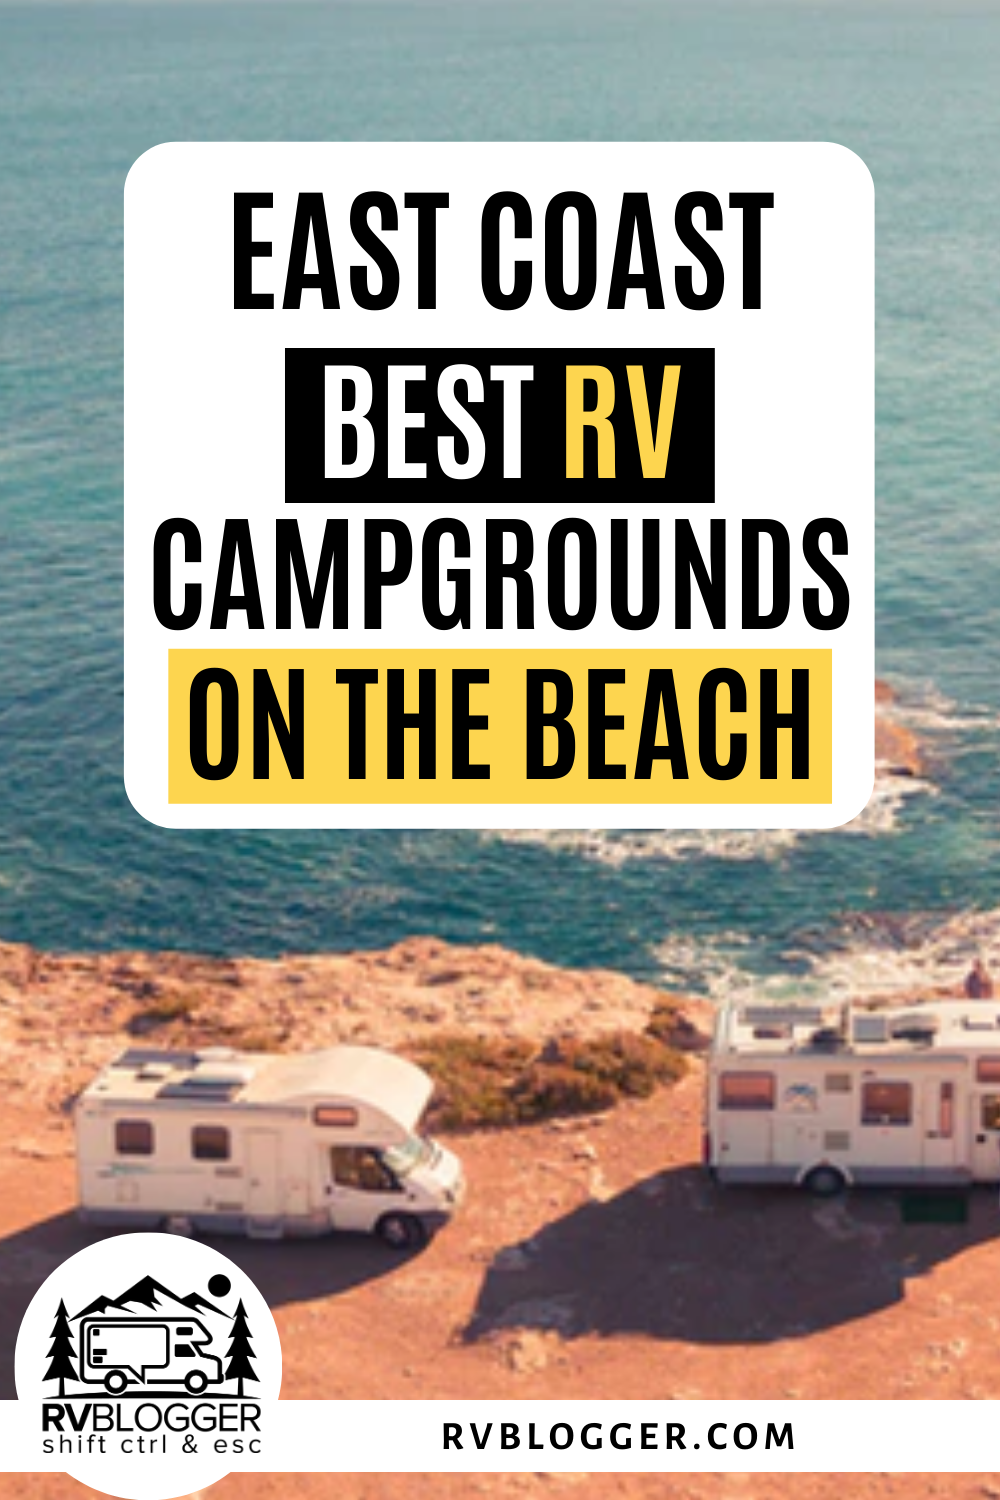 21 Best Rv Campgrounds On The Beach East Coast Guide Rvblogger Road Trip Camping East Coast Road Trip Maine Road Trip